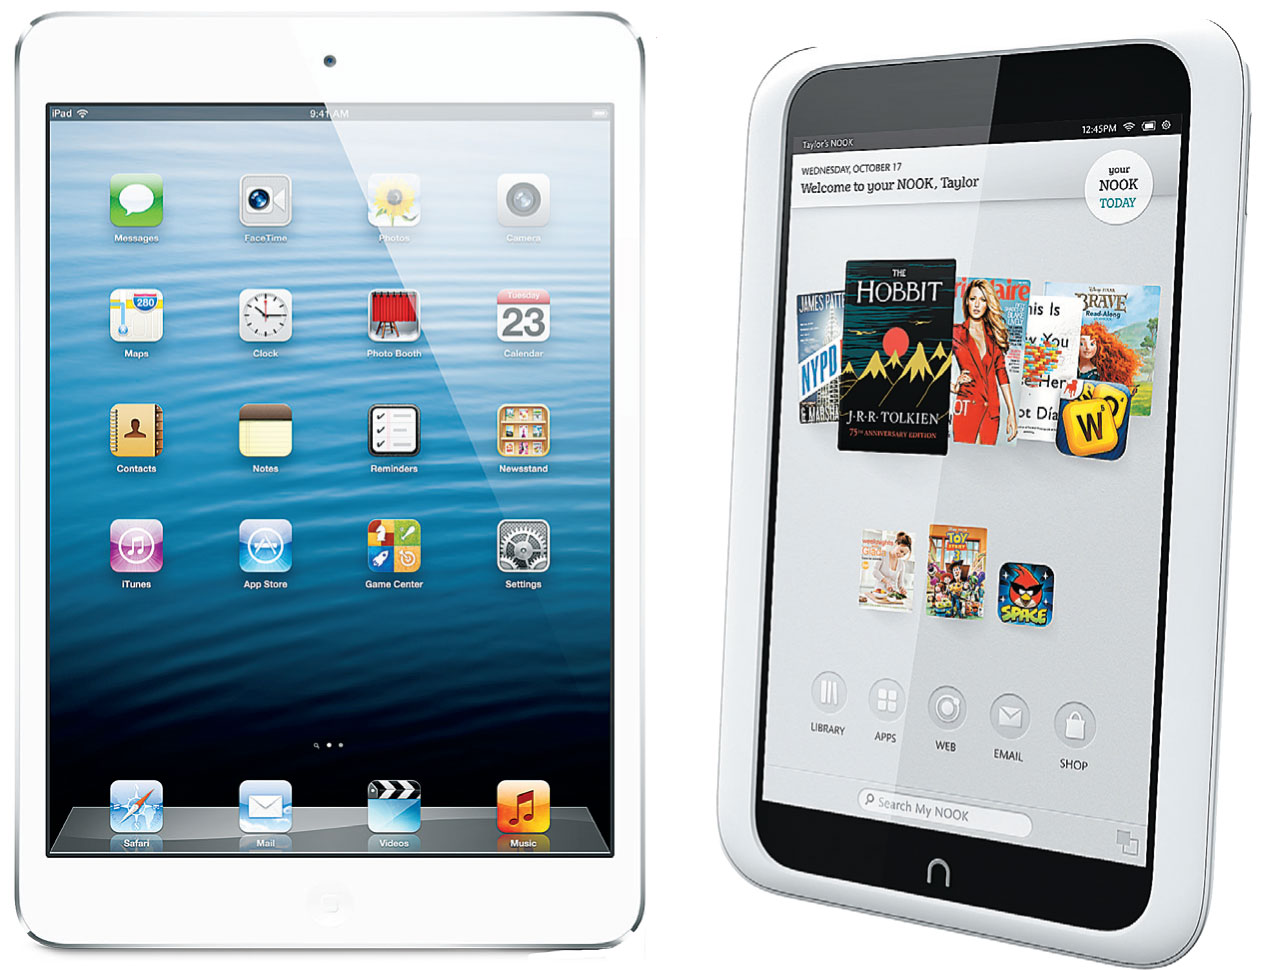 Newest Nook may be a better option than iPad mini - The